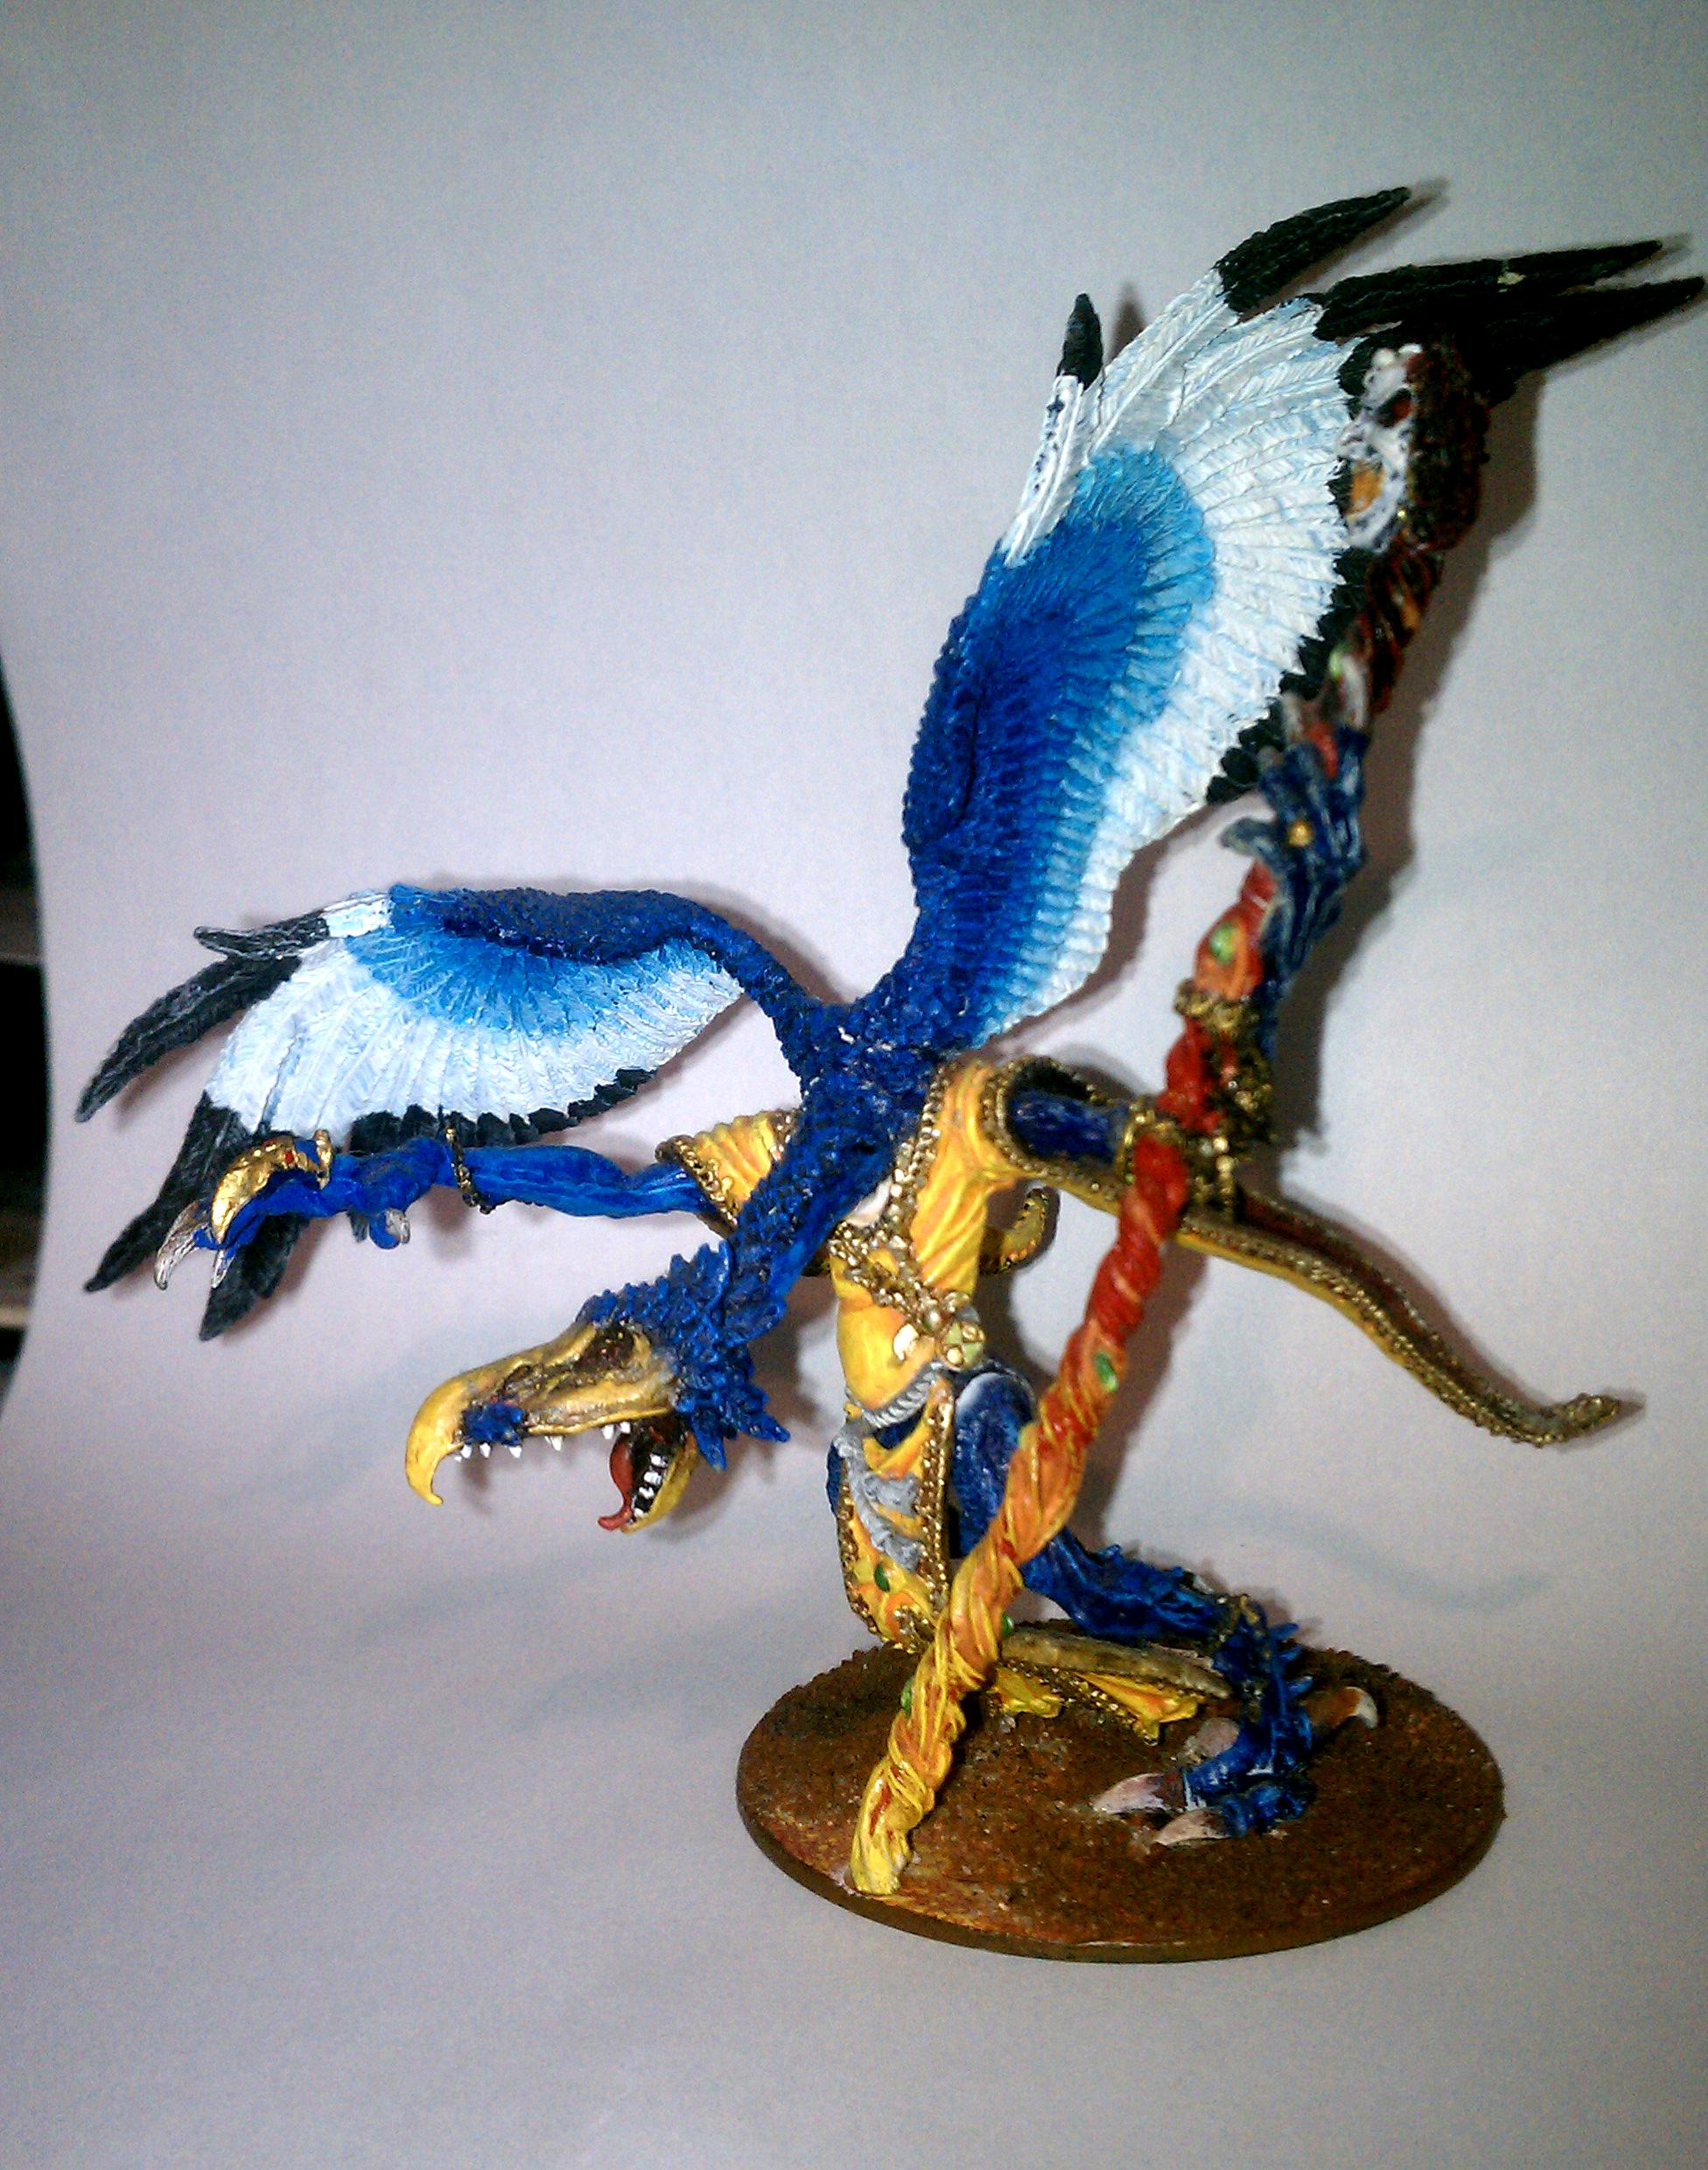 Chaos Daemons, Chaos Space Marines, Daemons, Lord Of Change, Tzeentch